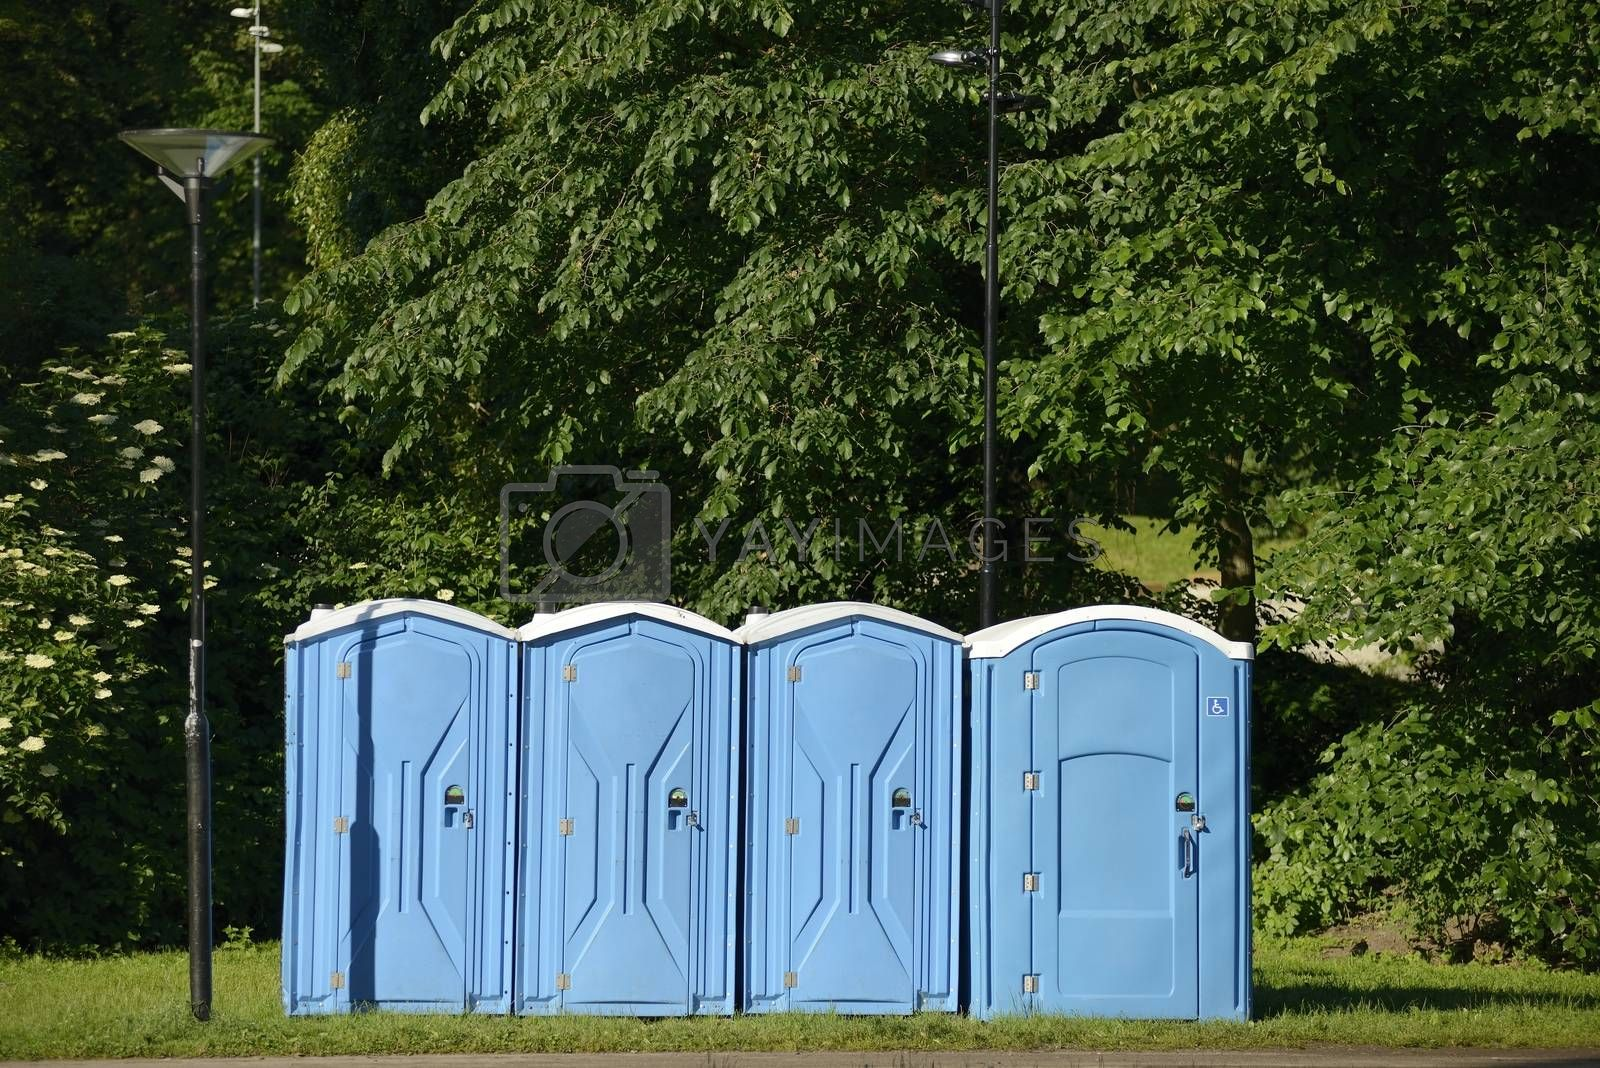 Old blue mobile toilet cabins